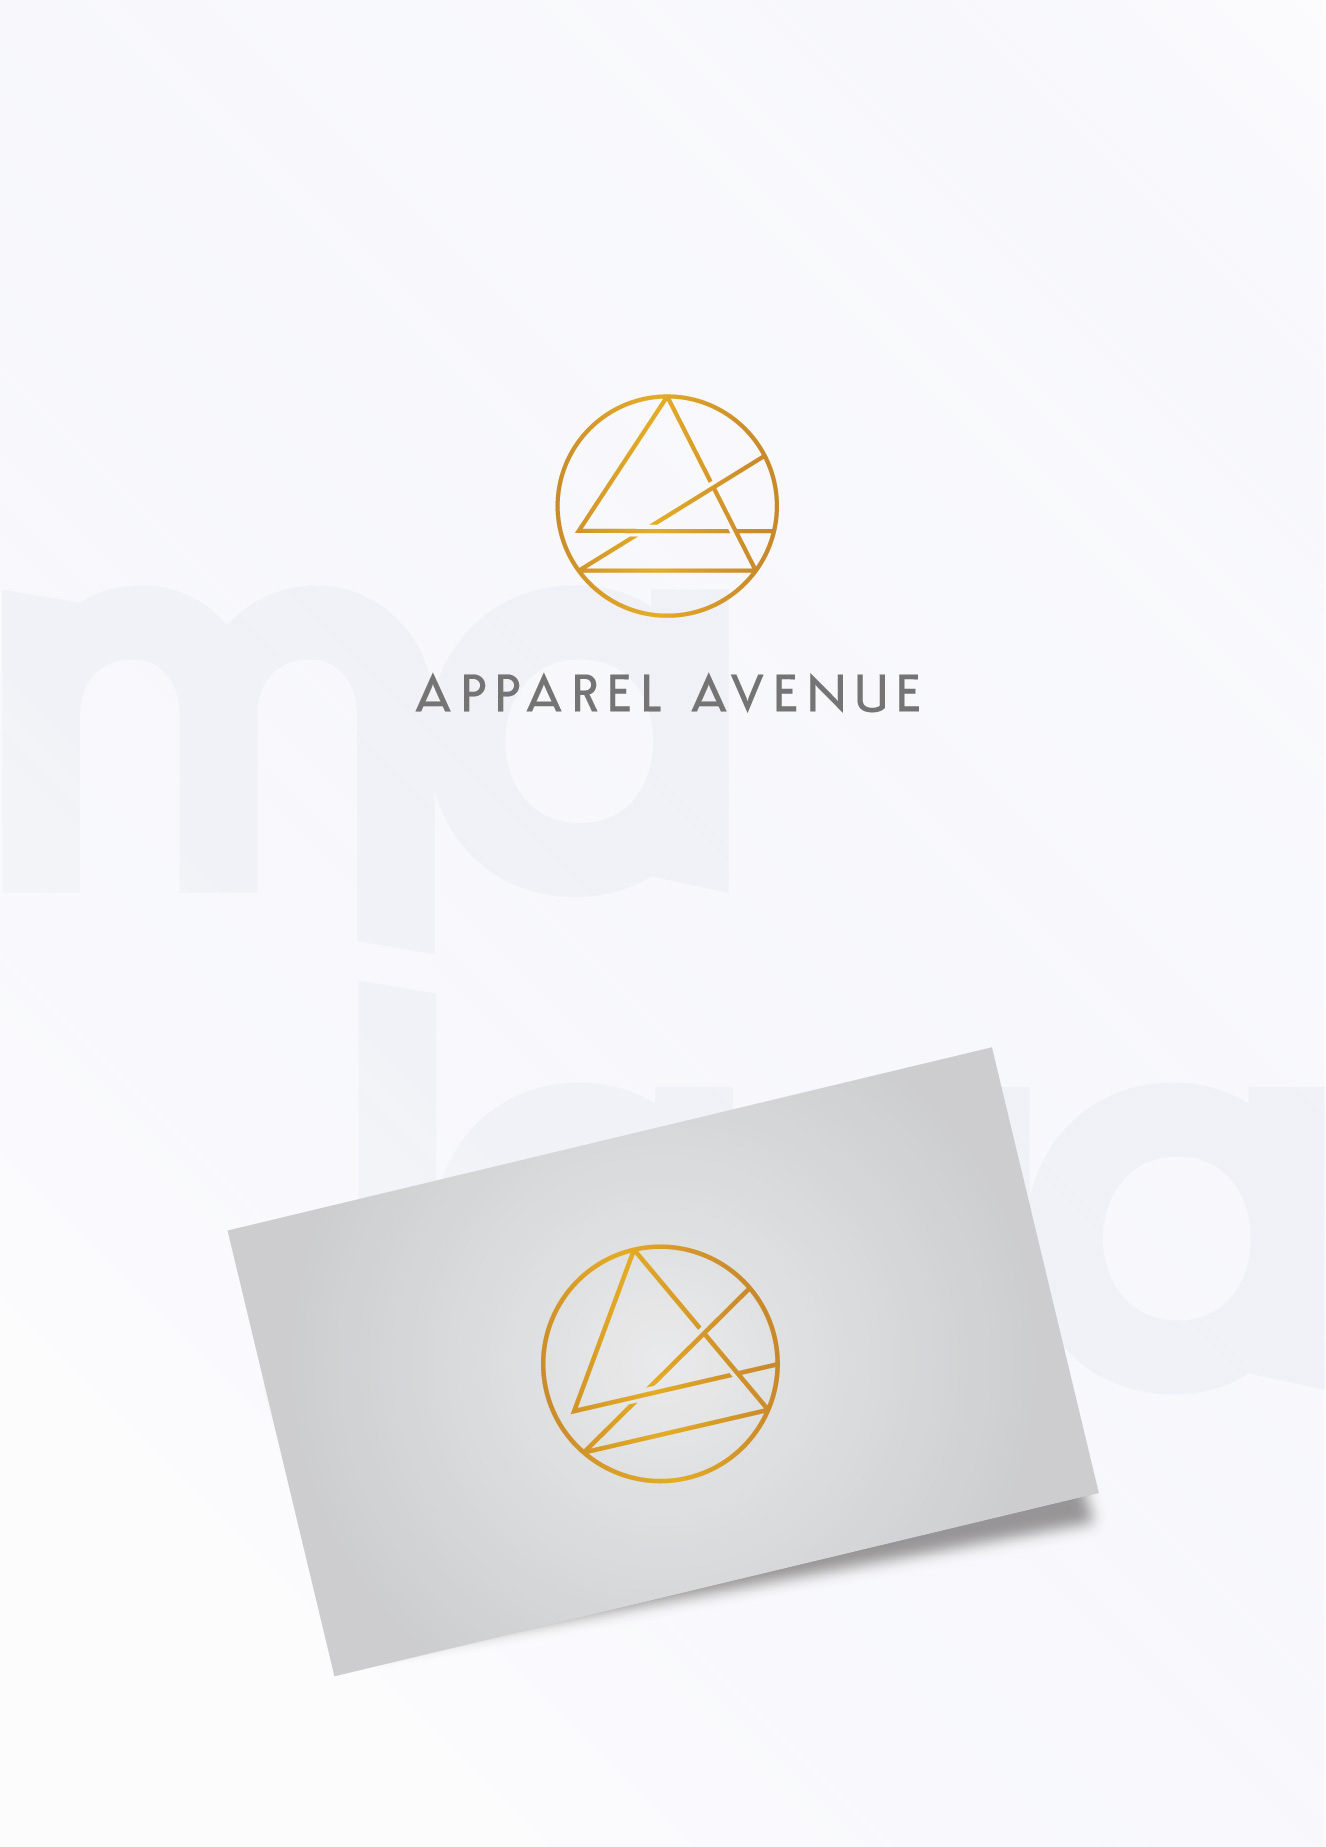 logo design apparel